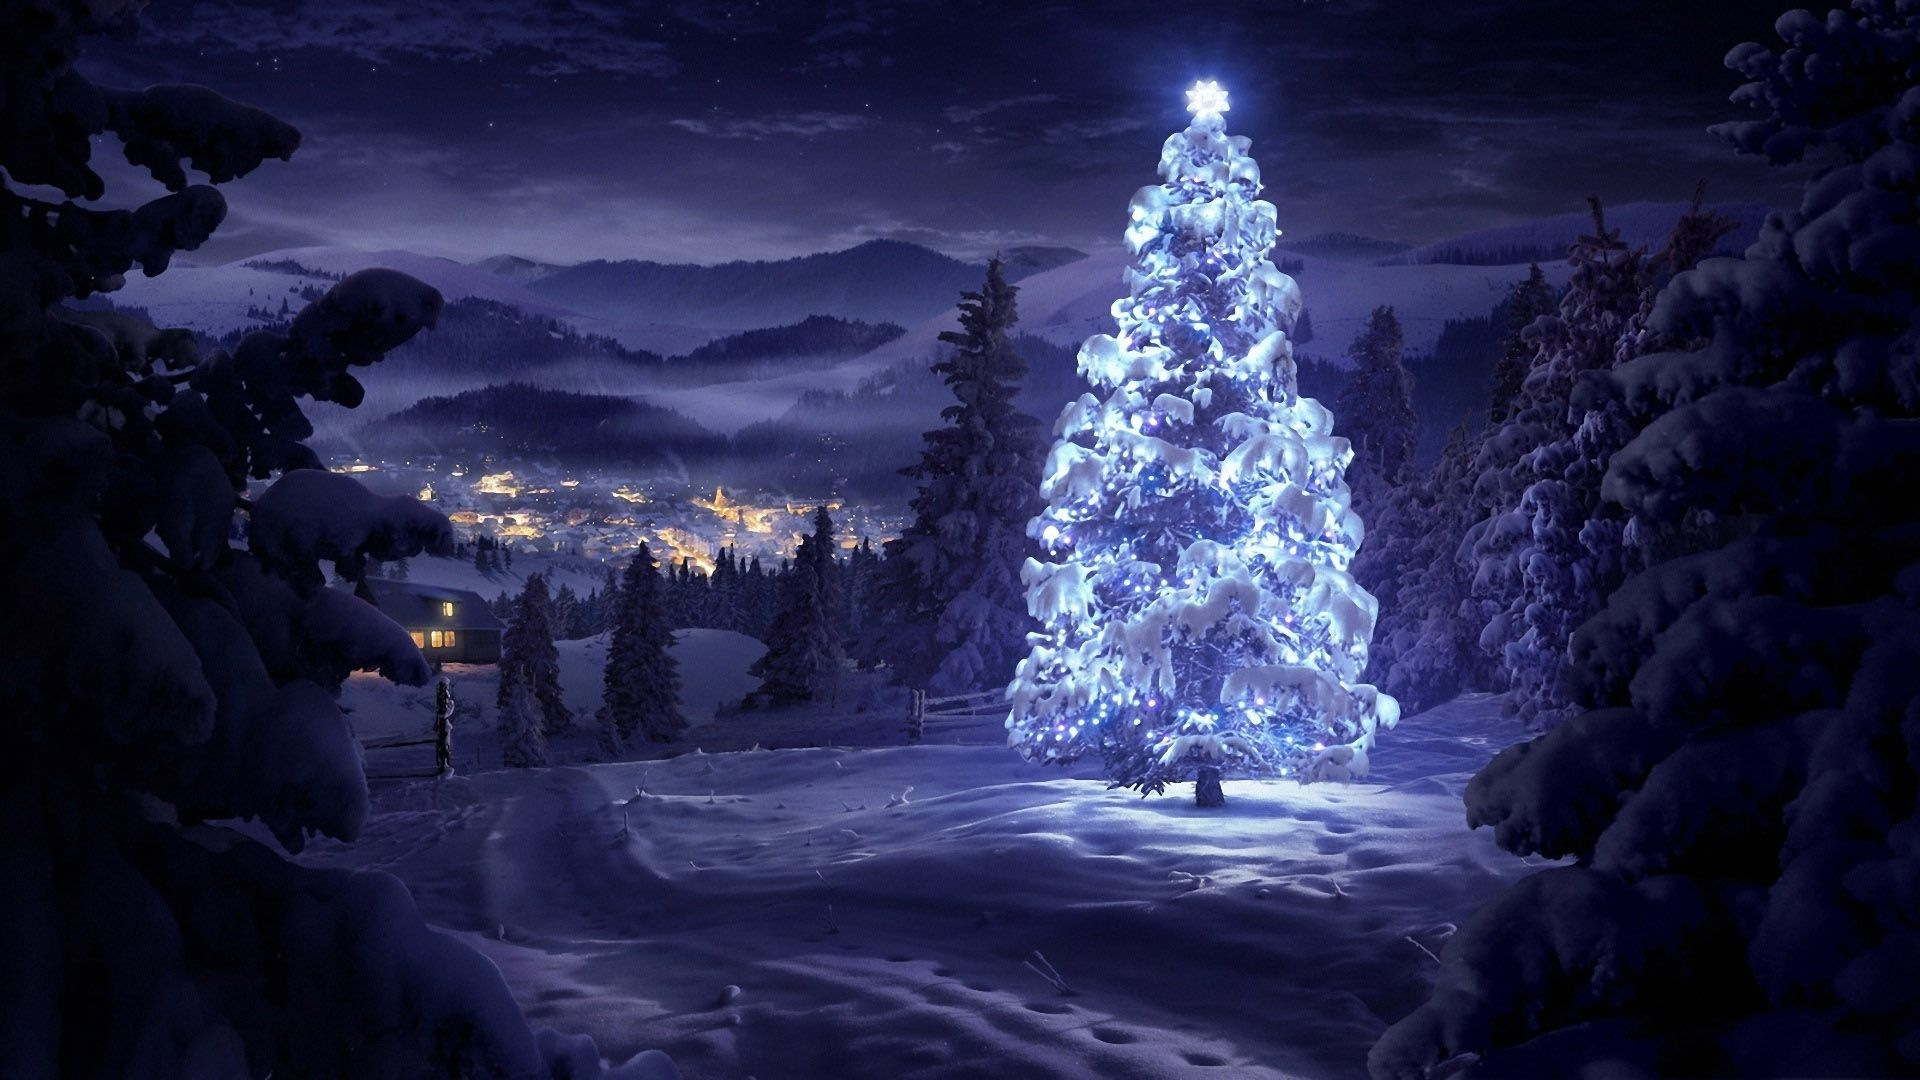 Night Christmas Wallpaper